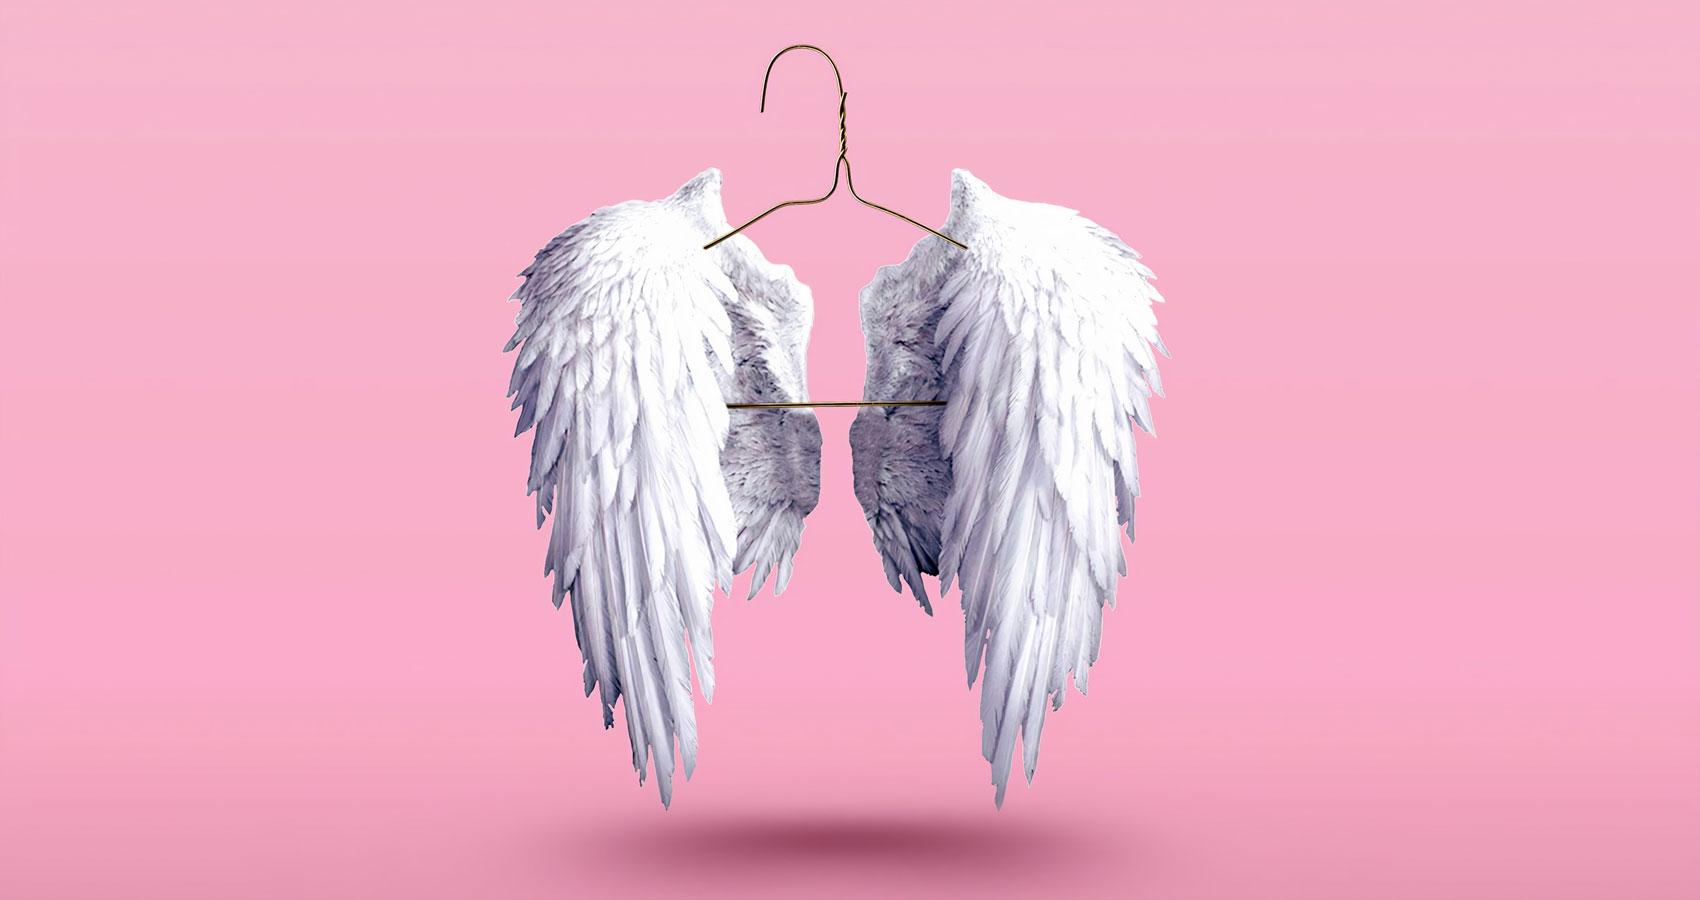 Wings, a poem written by Nicole Jia at Spillwords.com